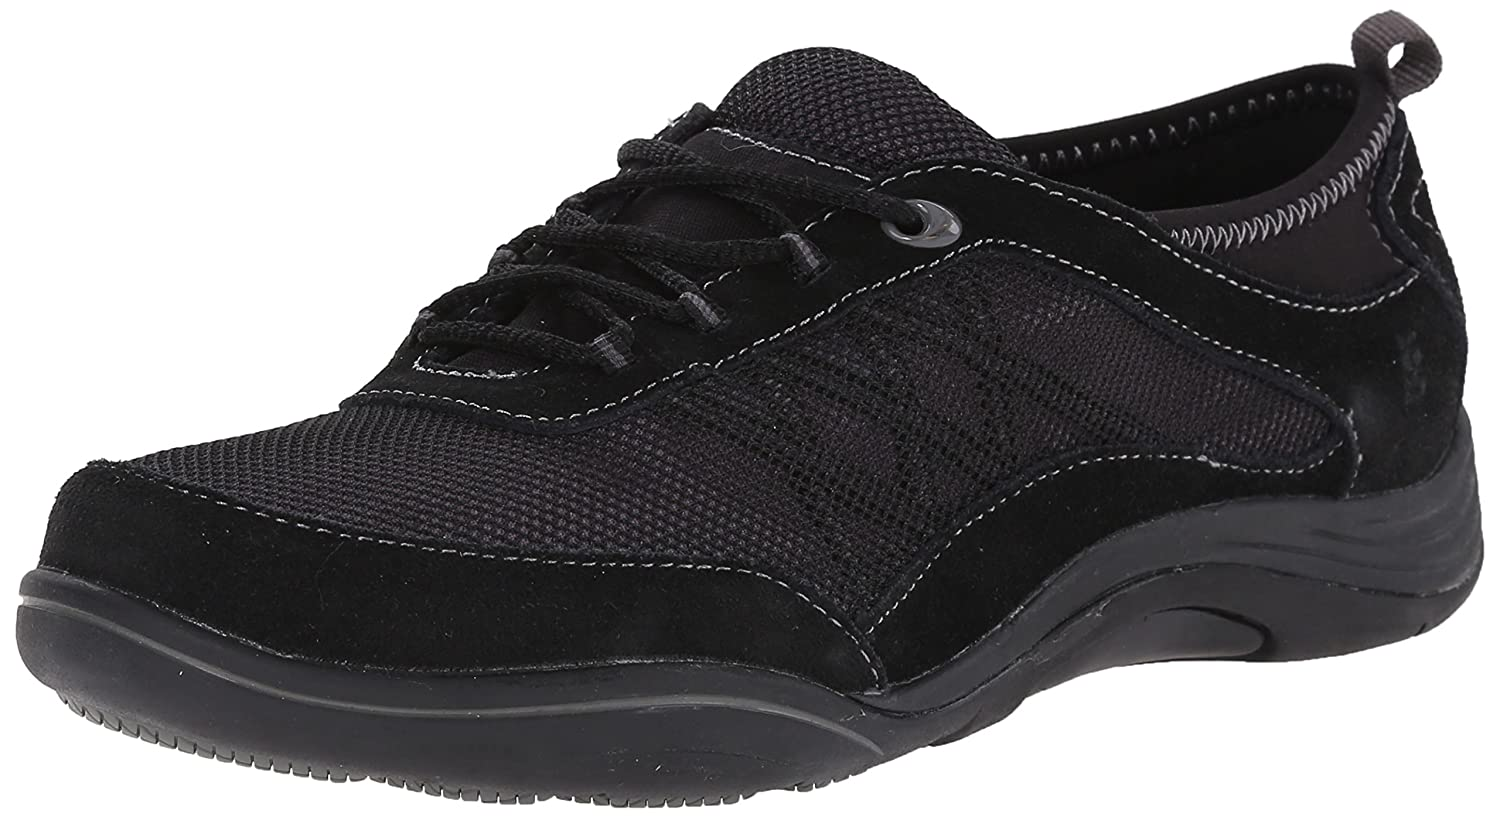 Grasshoppers Women's Explore Lace Fashion Sneaker B00Y5NO4RS 9.5 N US|Black